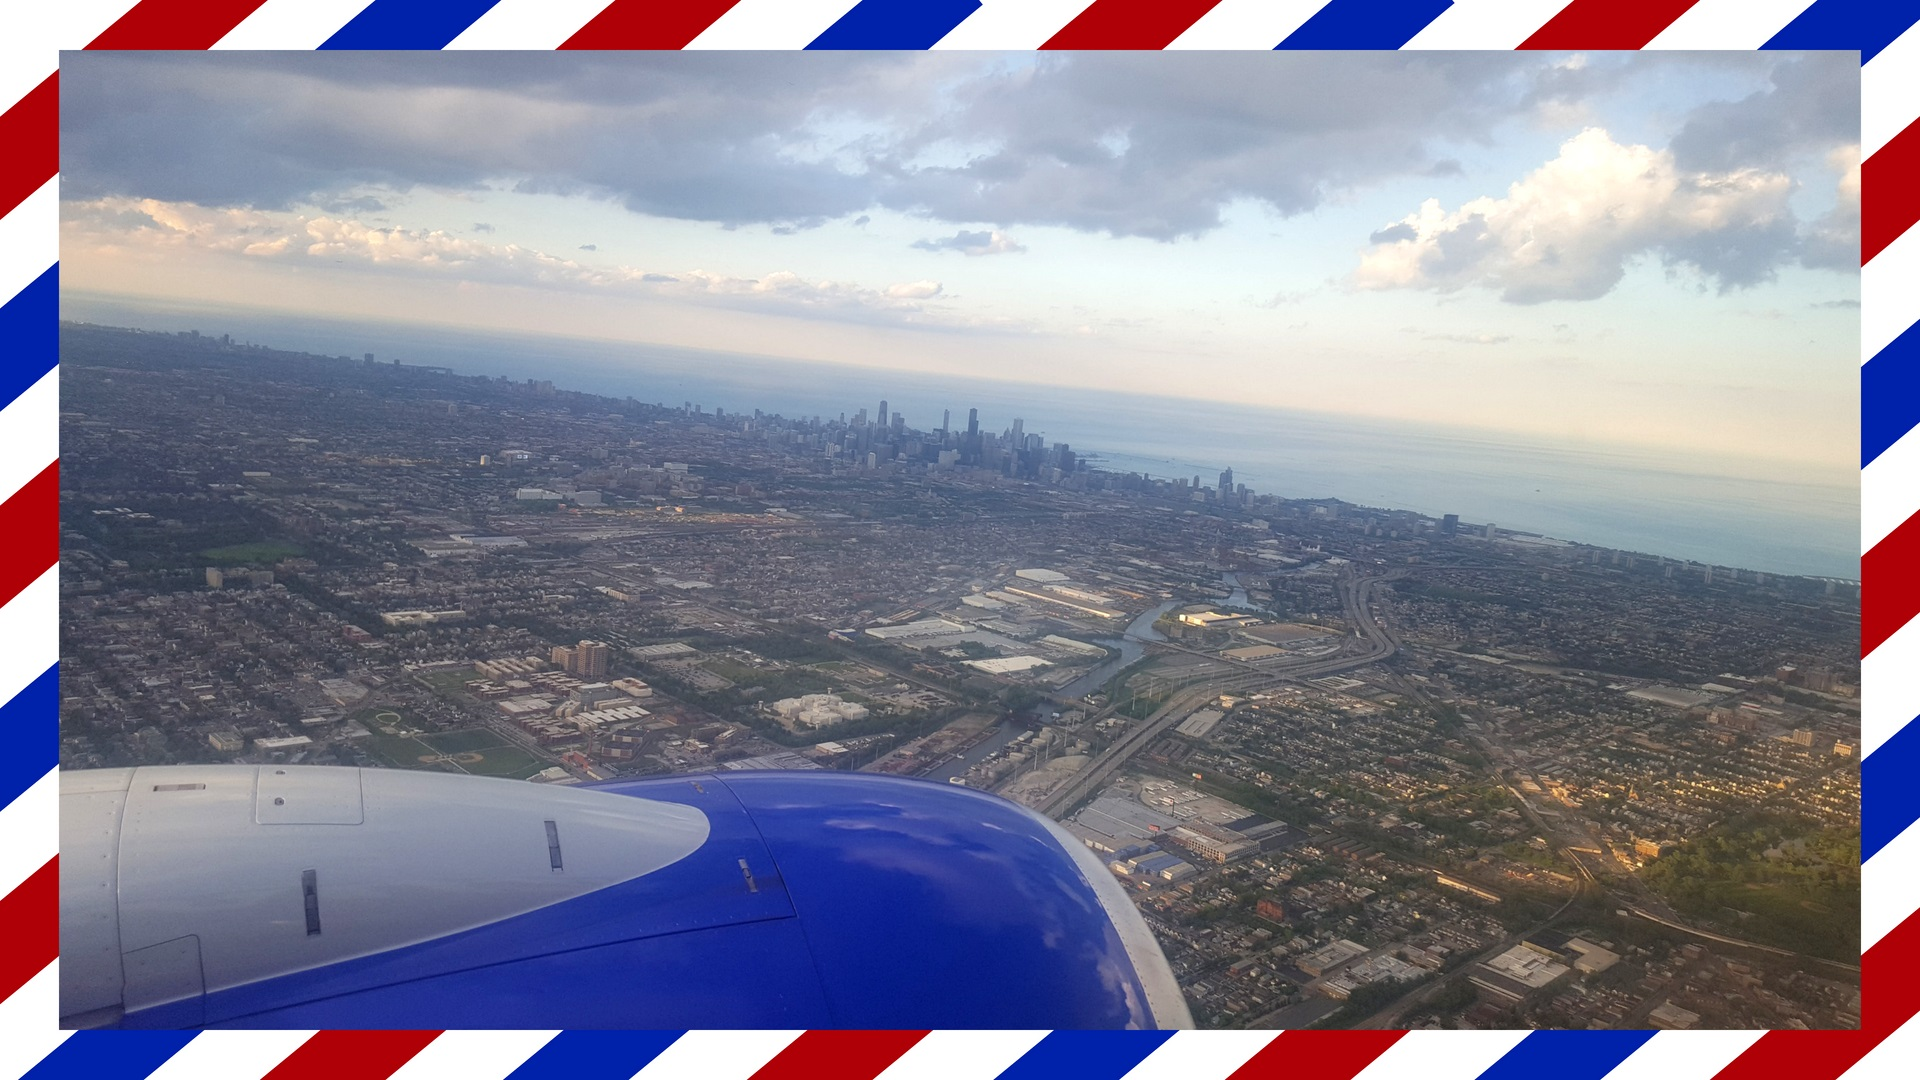 Postcards From Our Travelers: Chicago, IL, Featured Image--Image of city skyline from airplane